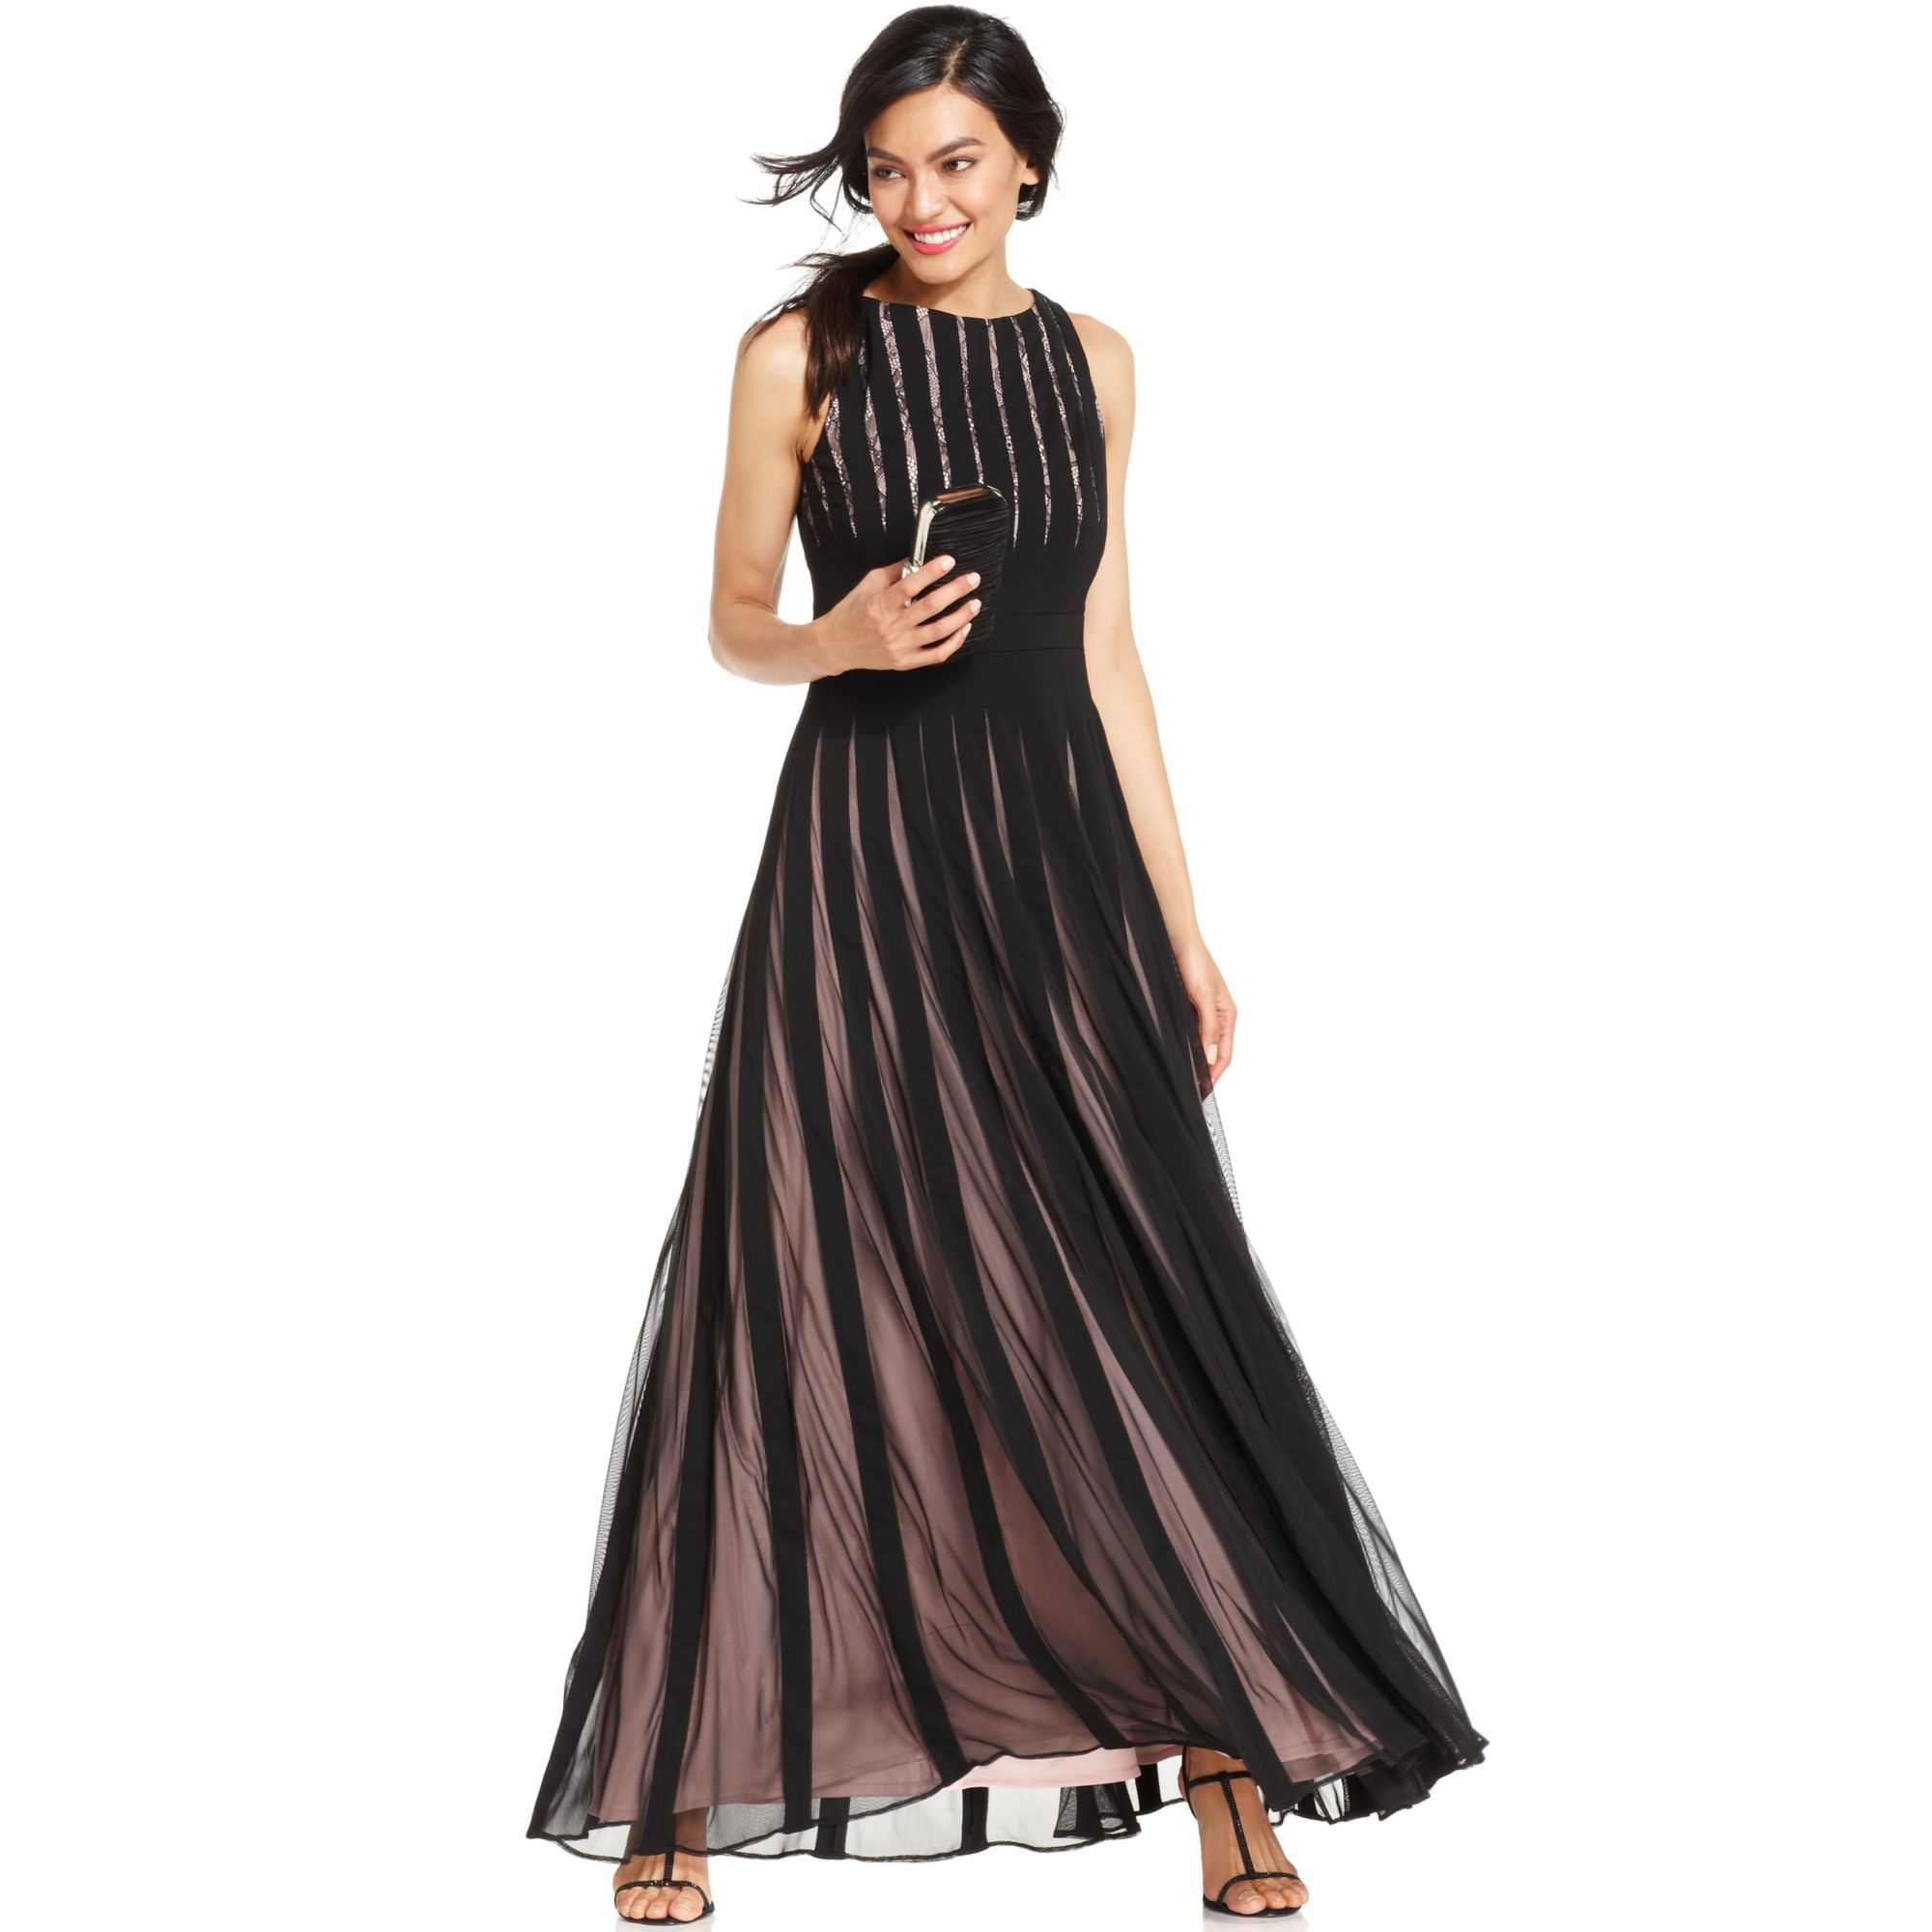 Lyst - Js Collections S Illusion Striped Lace Gown in Black